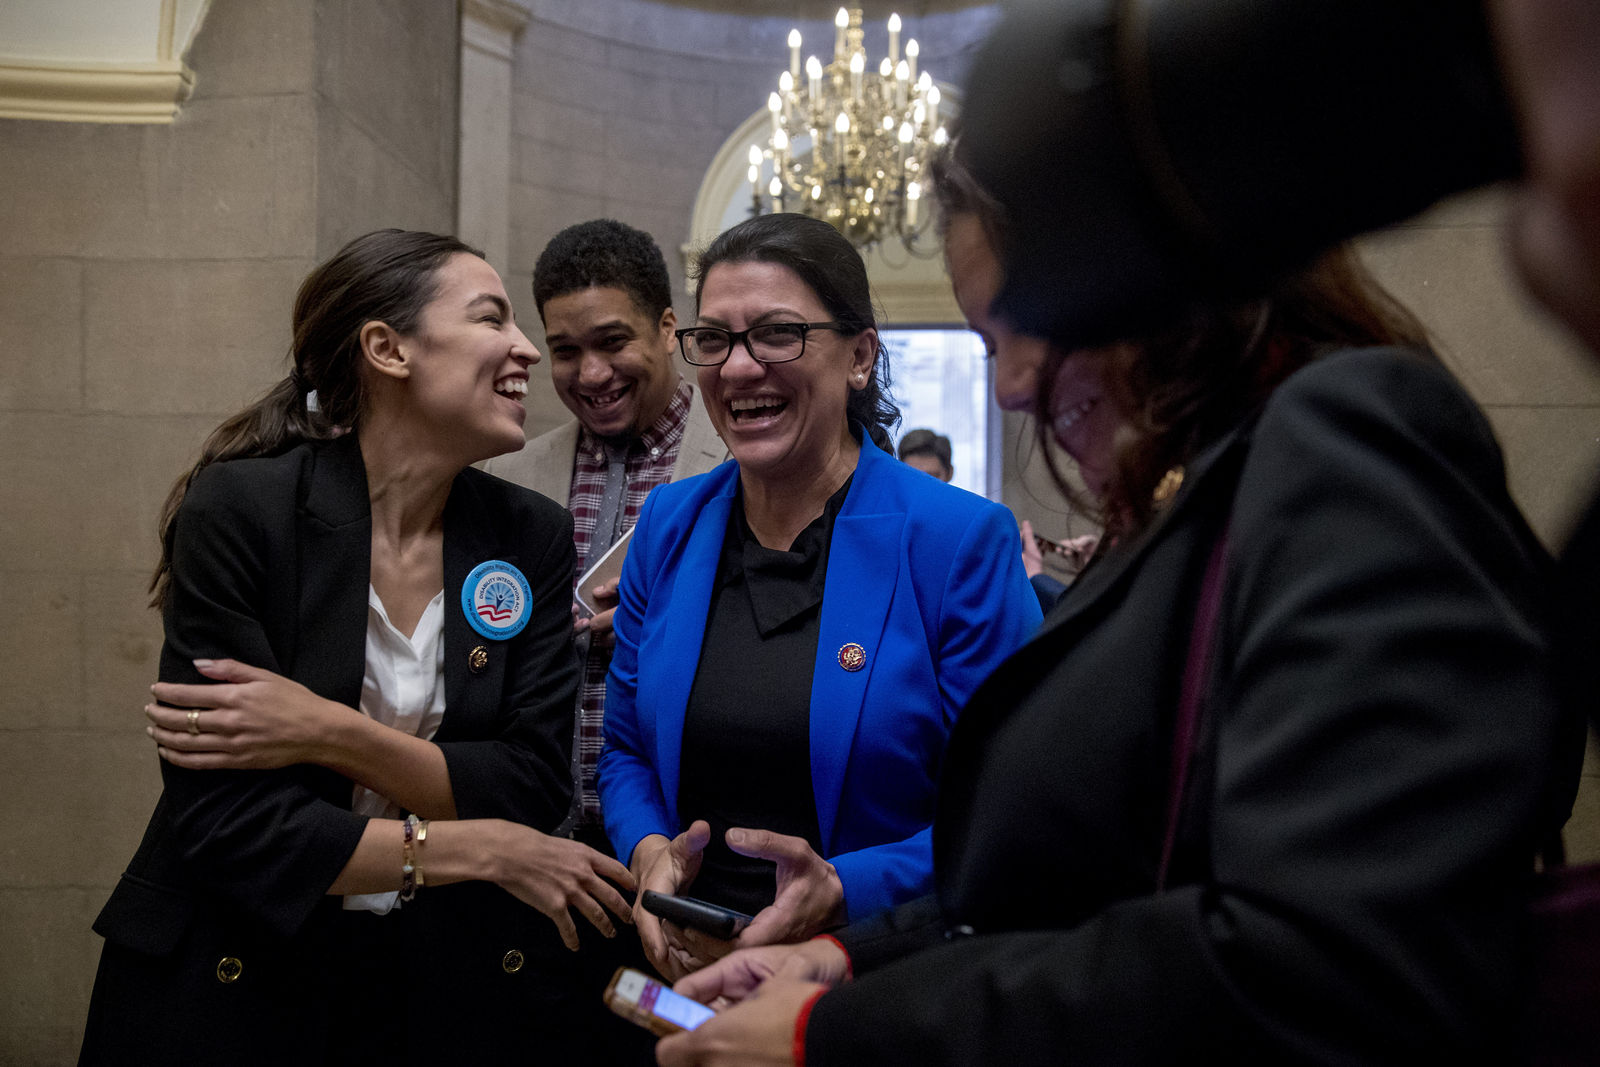 Rep. Alexandria Ocasio-Cortez, D-N.Y., left, and Rep. Rashida Tlaib, D-Mich., right, laugh as they wait for other freshman Congressmen to deliver a letter calling to an end to the government shutdown to deliver to the office of Senate Majority Leader Mitch McConnell of Ky., on Capitol Hill in Washington, Wednesday, Jan. 16, 2019. Also pictured is Rep. Veronica Escobar, D-Texas, right. (AP Photo/Andrew Harnik)